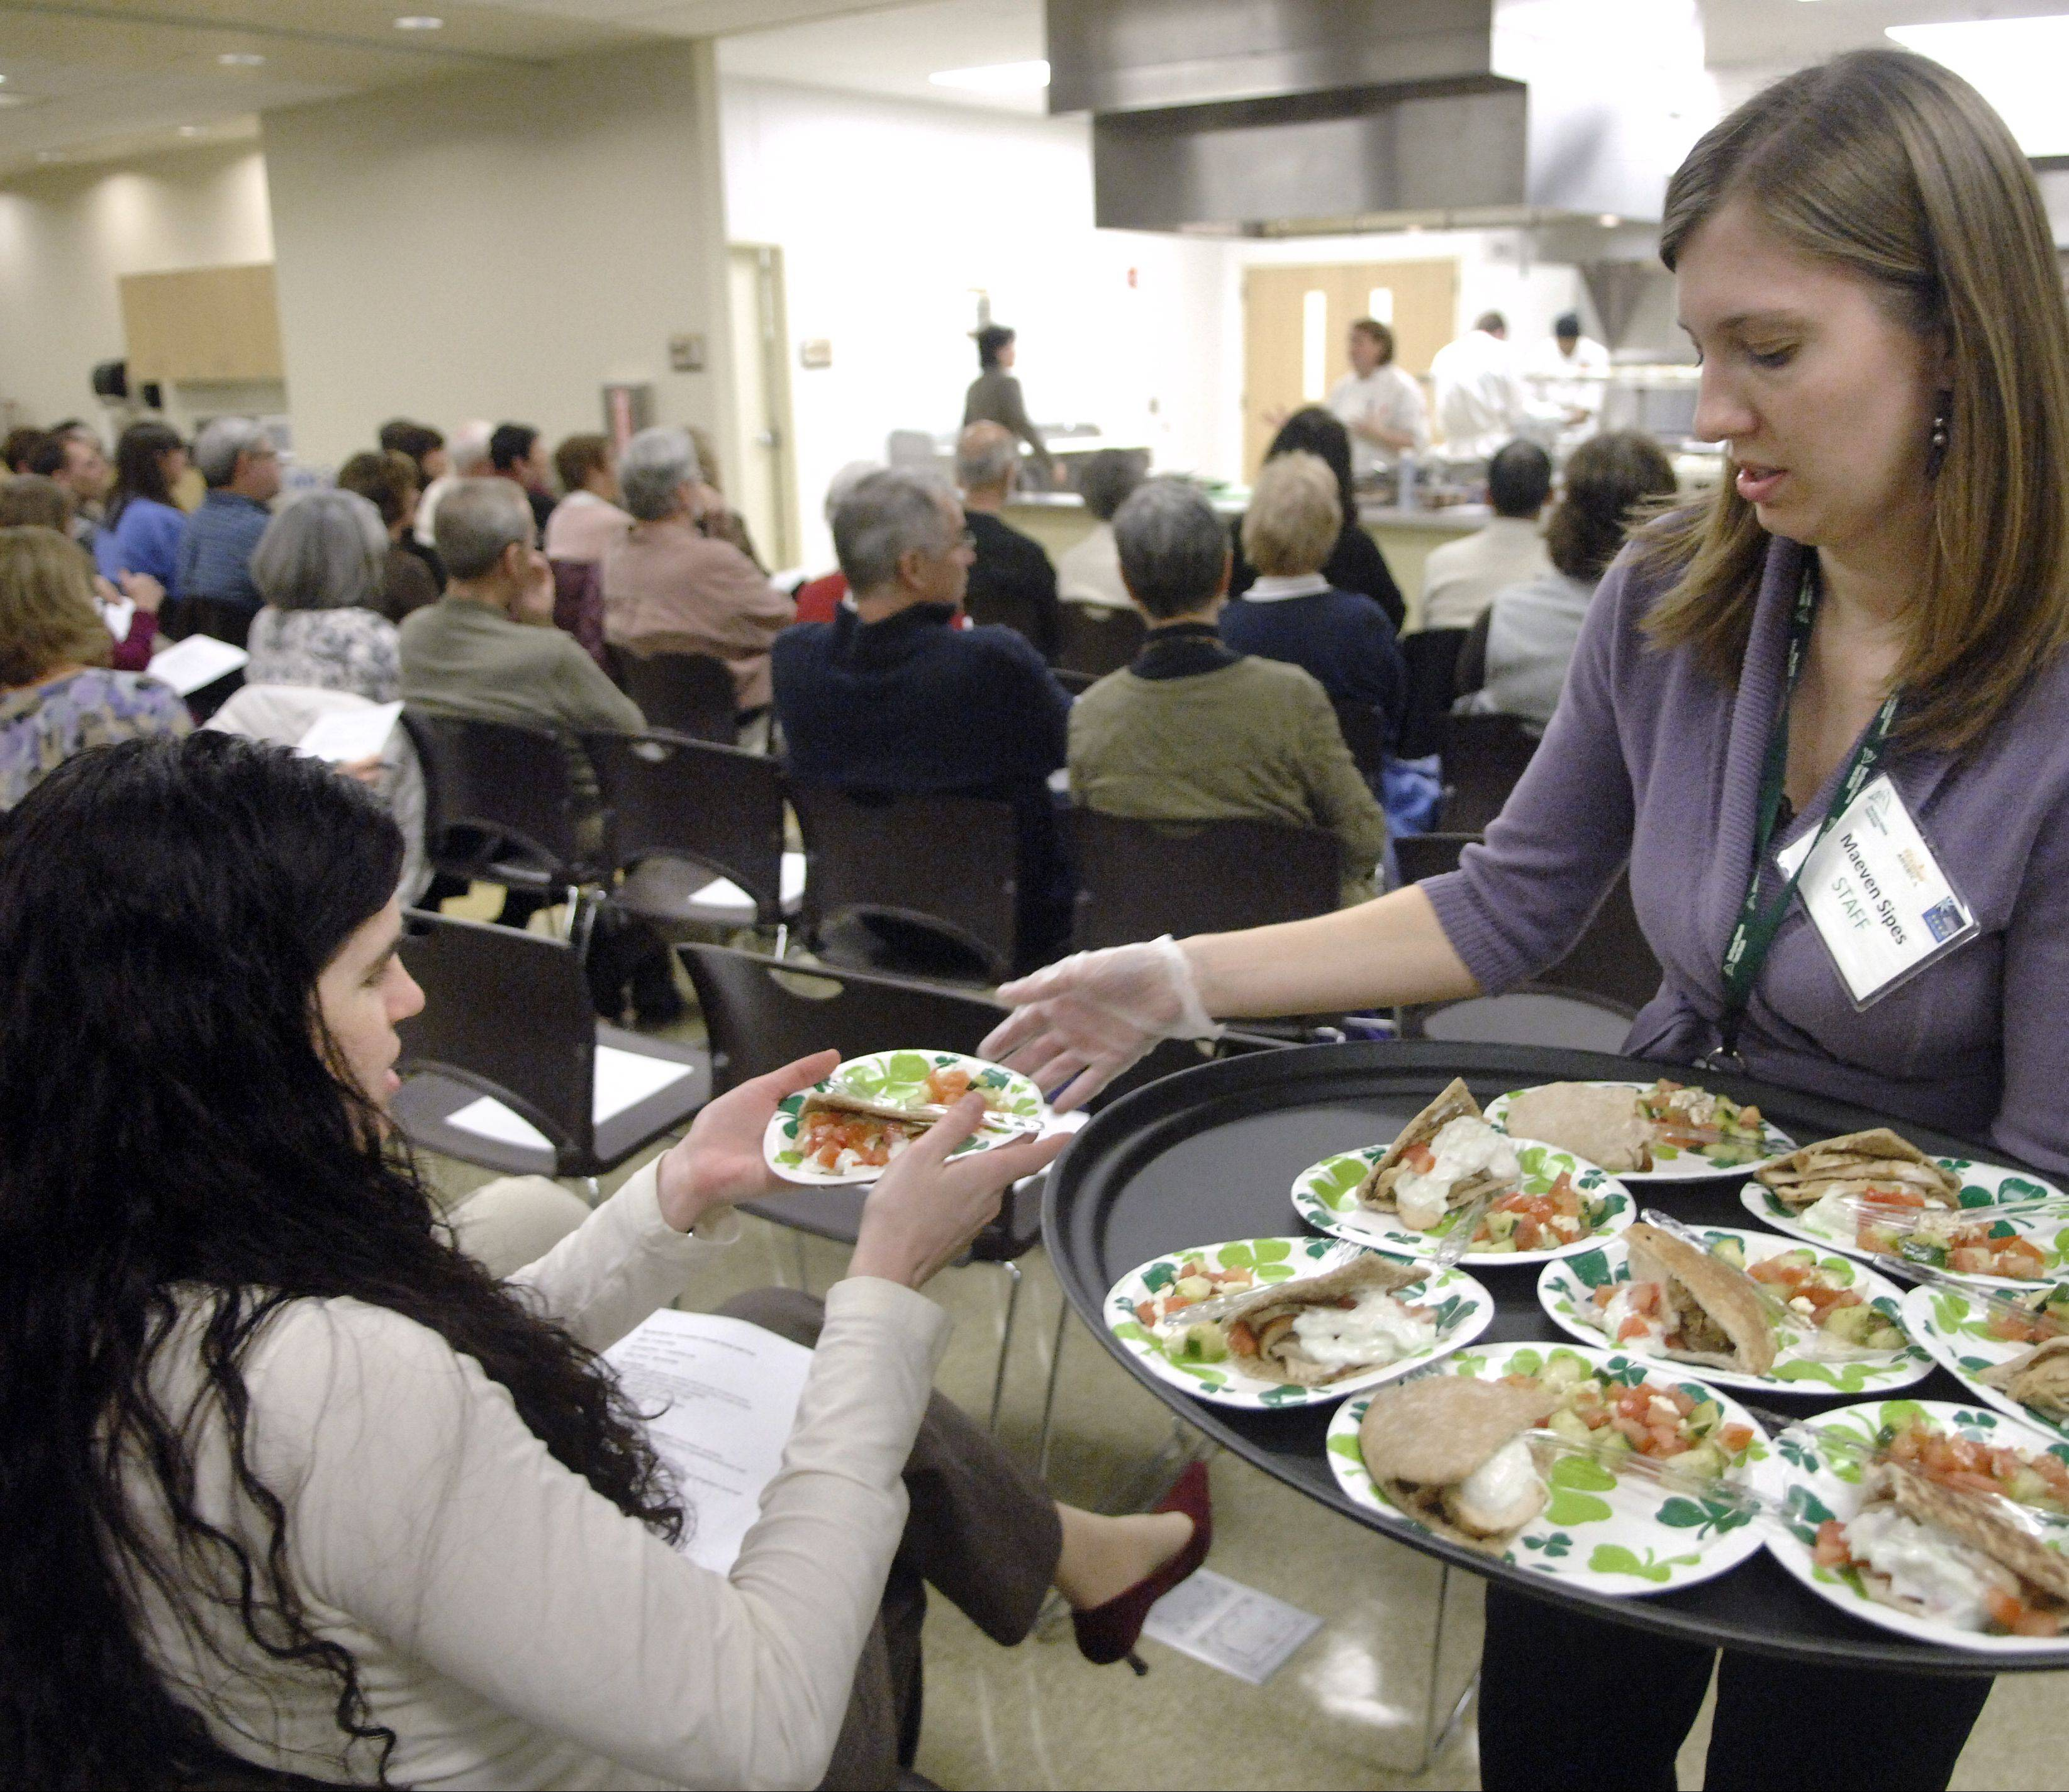 Staff member Maeven Sipes hands out samples of chicken gyros and a cucumber, tomato and feta salad while Jen Bucko Lamplough of Batavia demonstrates healthful cooking earlier this month at the Northern Illinois Food Bank in Geneva.